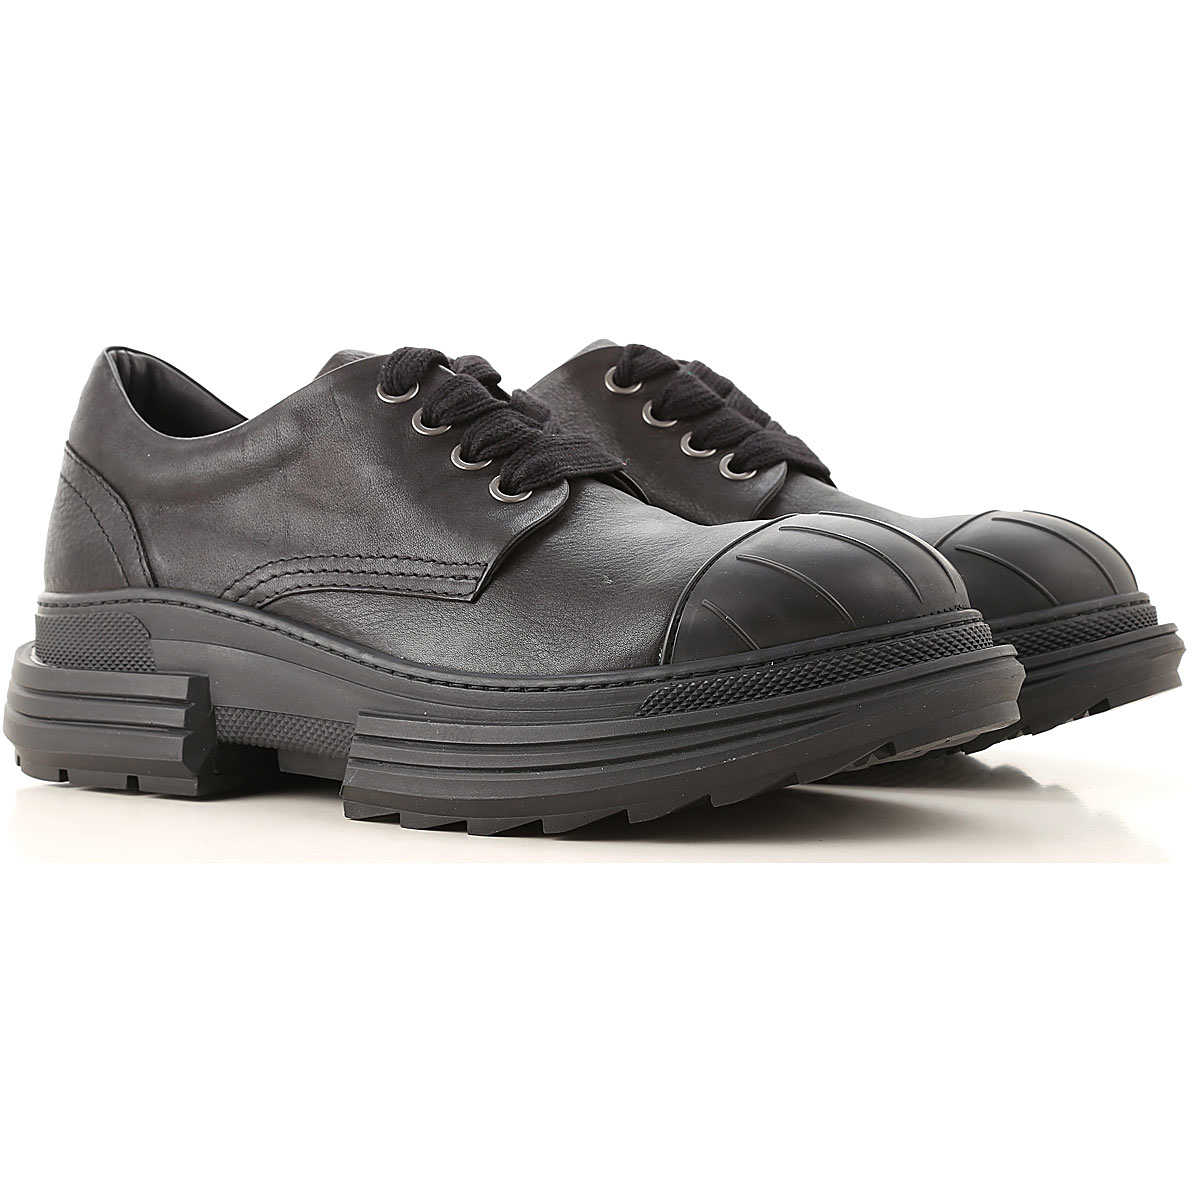 Beyond Lace Up Shoes for Men Oxfords 10.5 6.5 7 8 9 9.5 Derbies and Brogues UK - GOOFASH